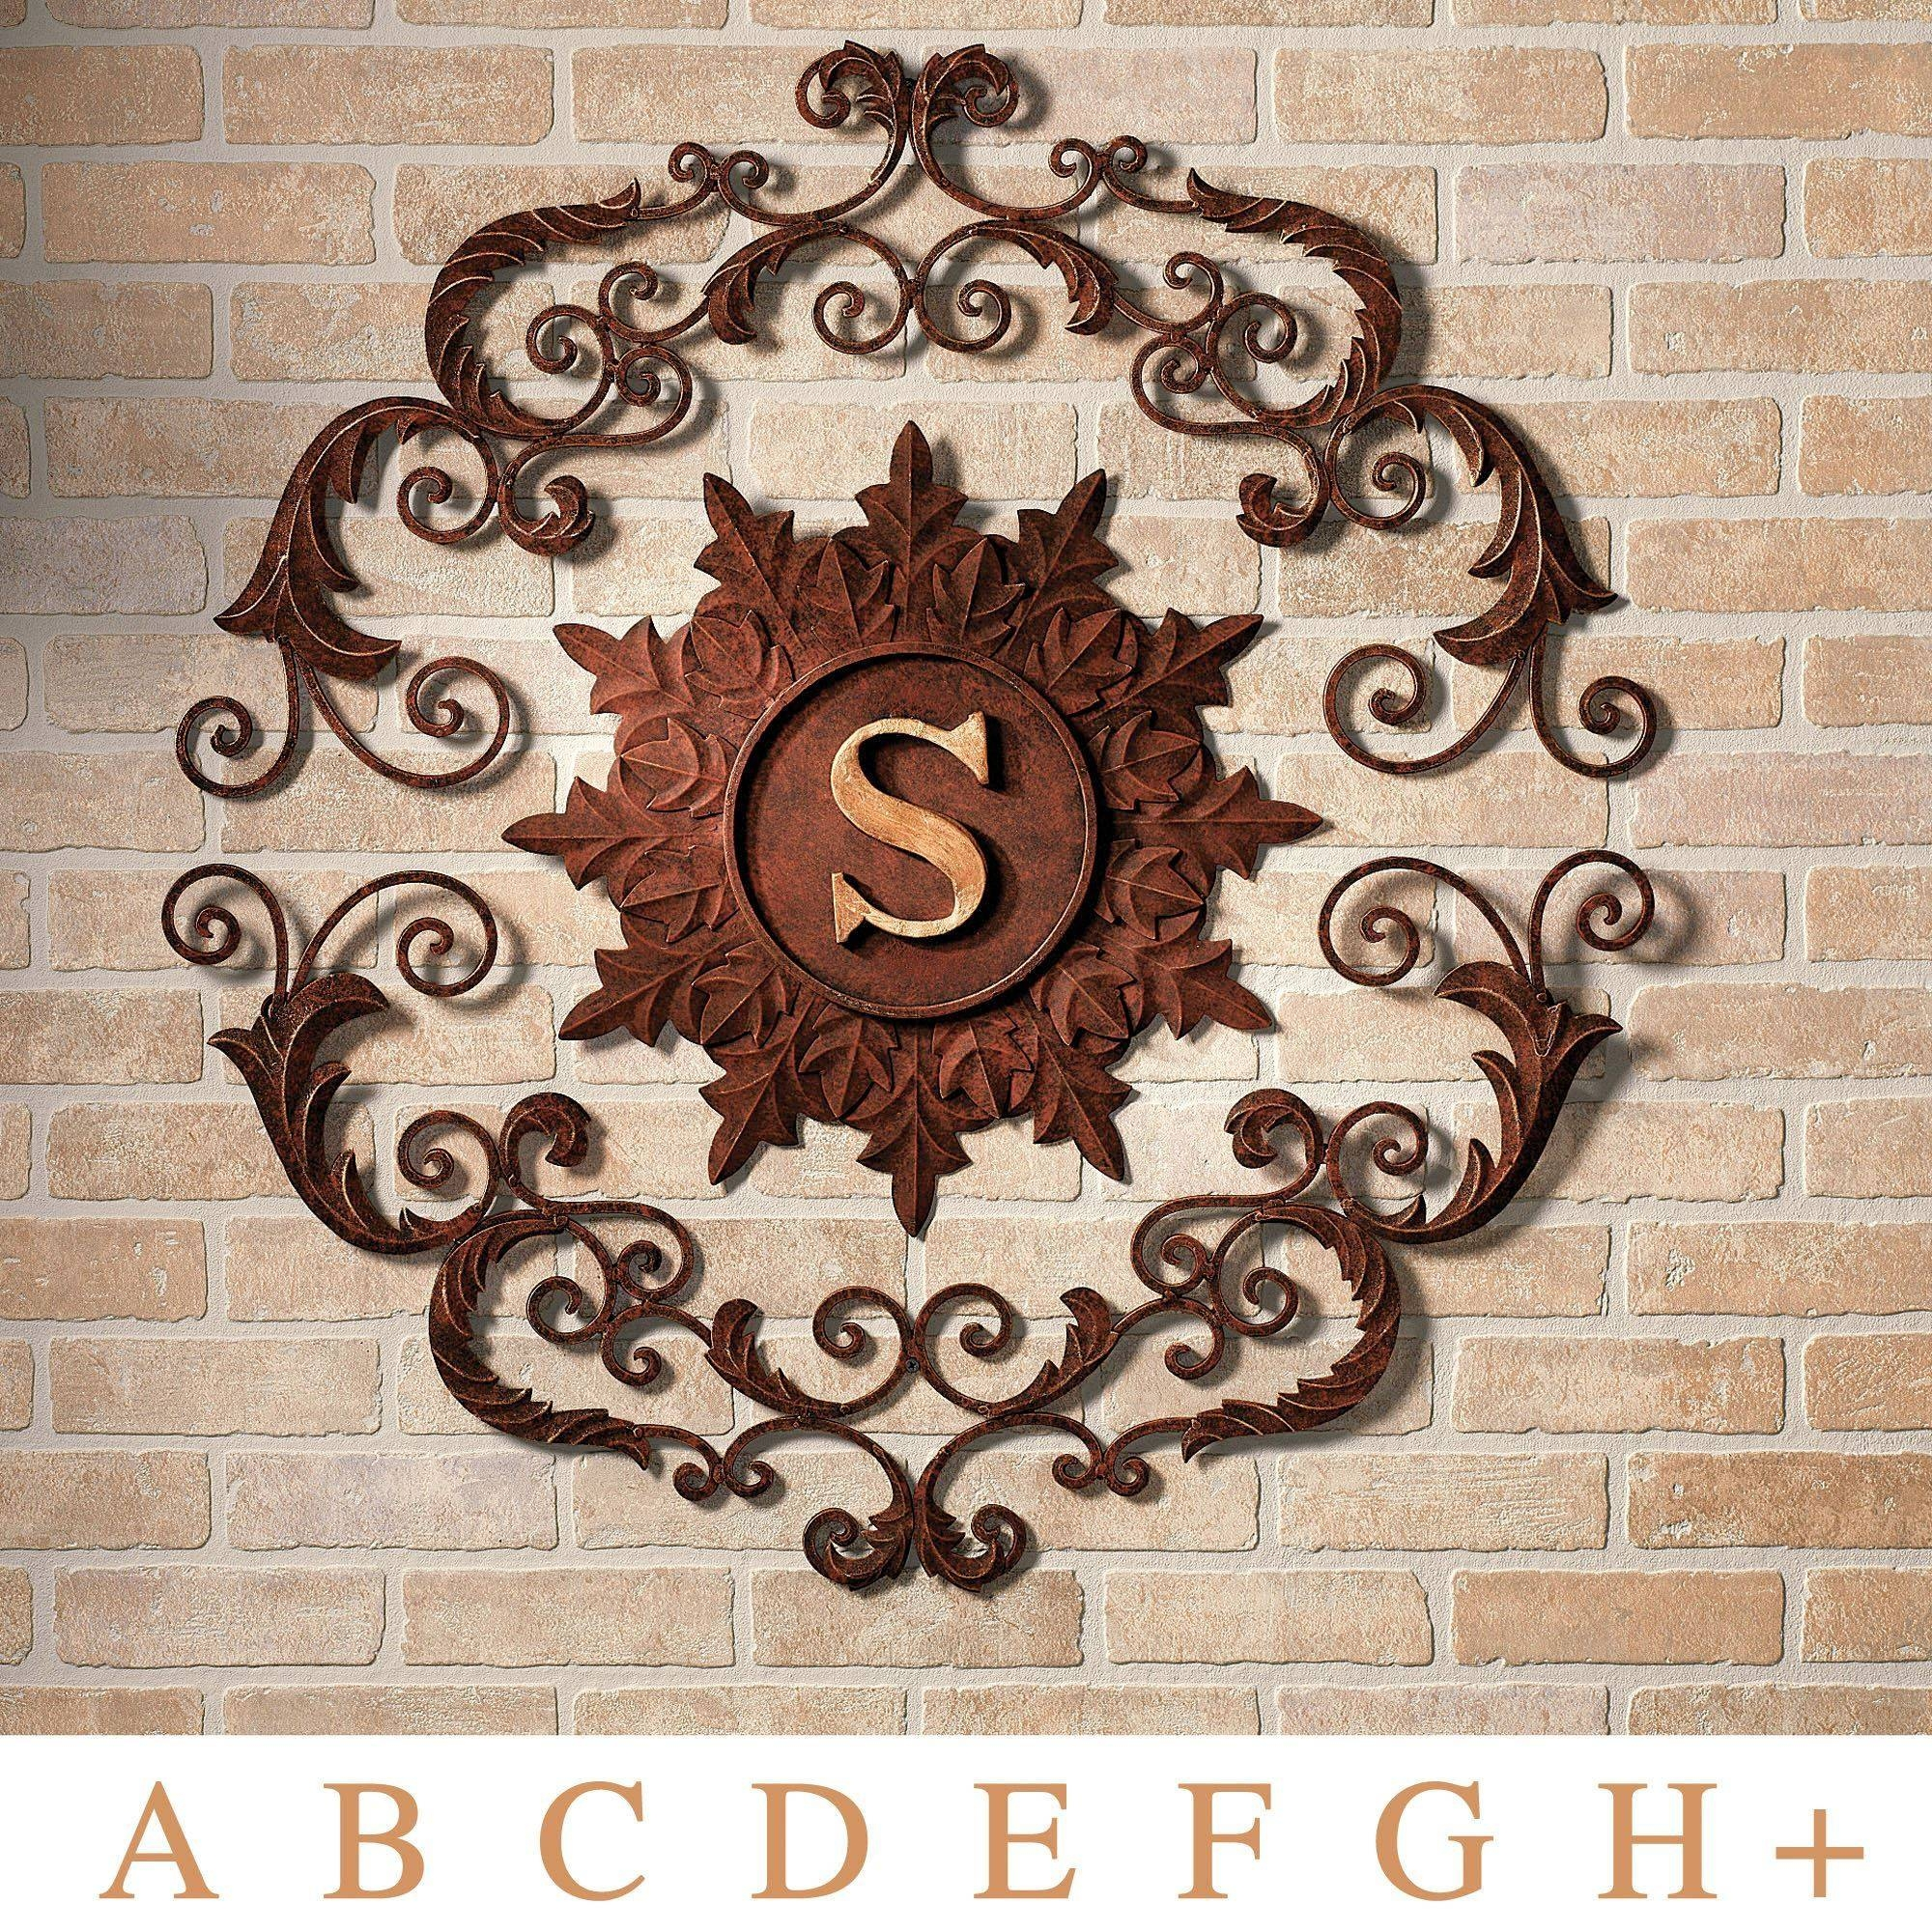 Kingston Monogram Metal Wall Grille Regarding Current Monogram Metal Wall Art (View 13 of 20)